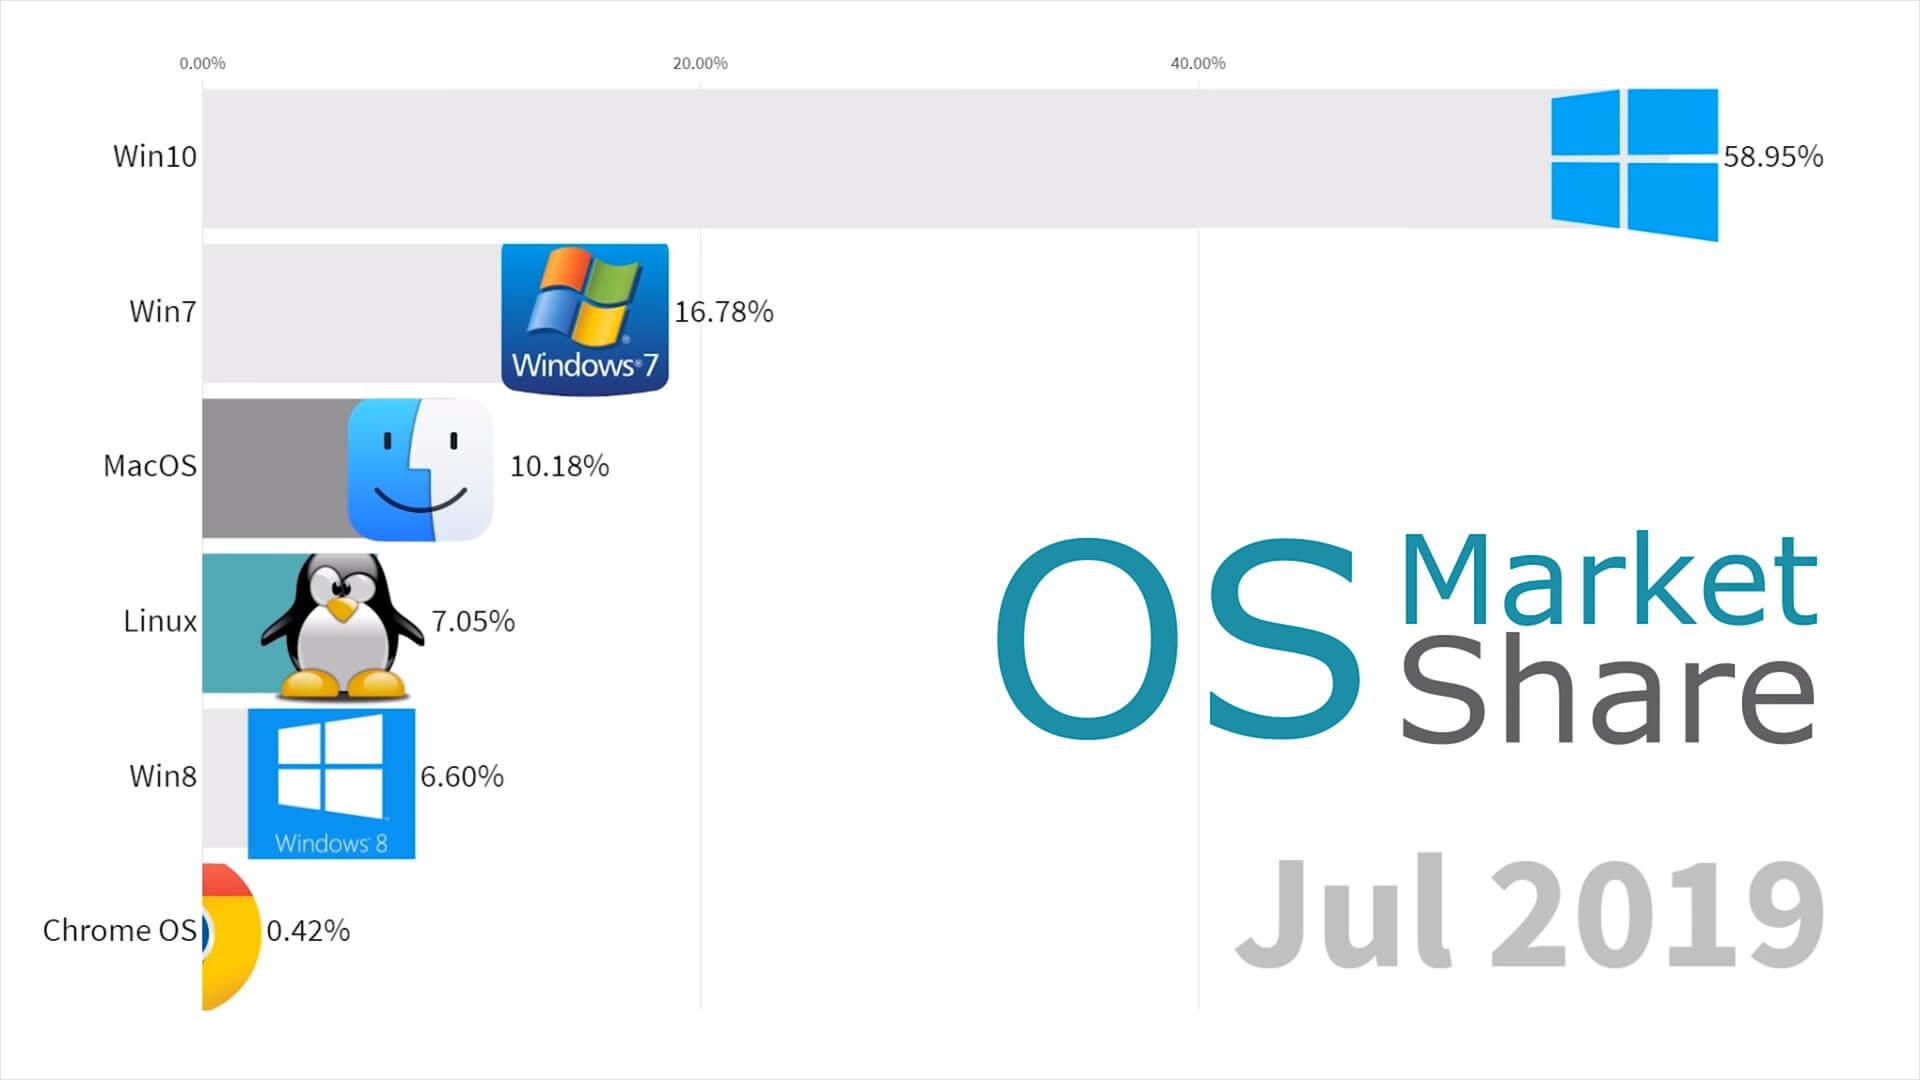 Windows 10 Market Share is now more than 50%